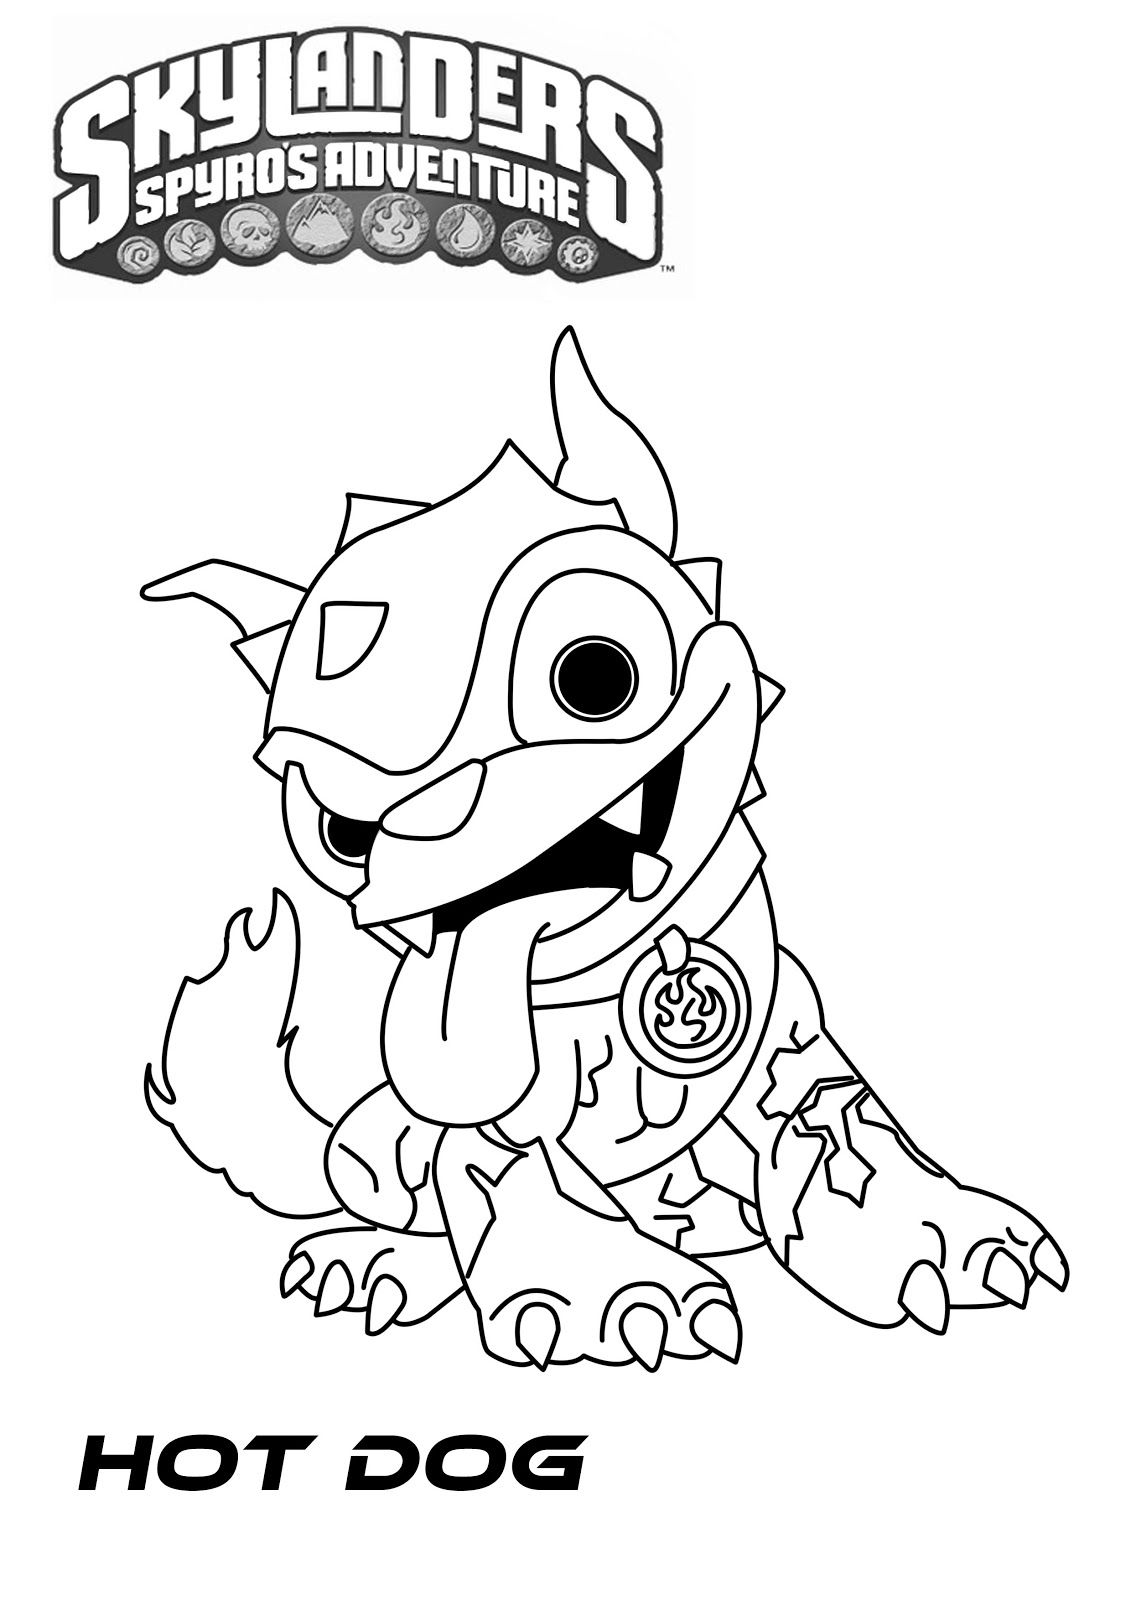 Skylander Coloring Page | COLORING PAGES FOR FREE | Pinterest